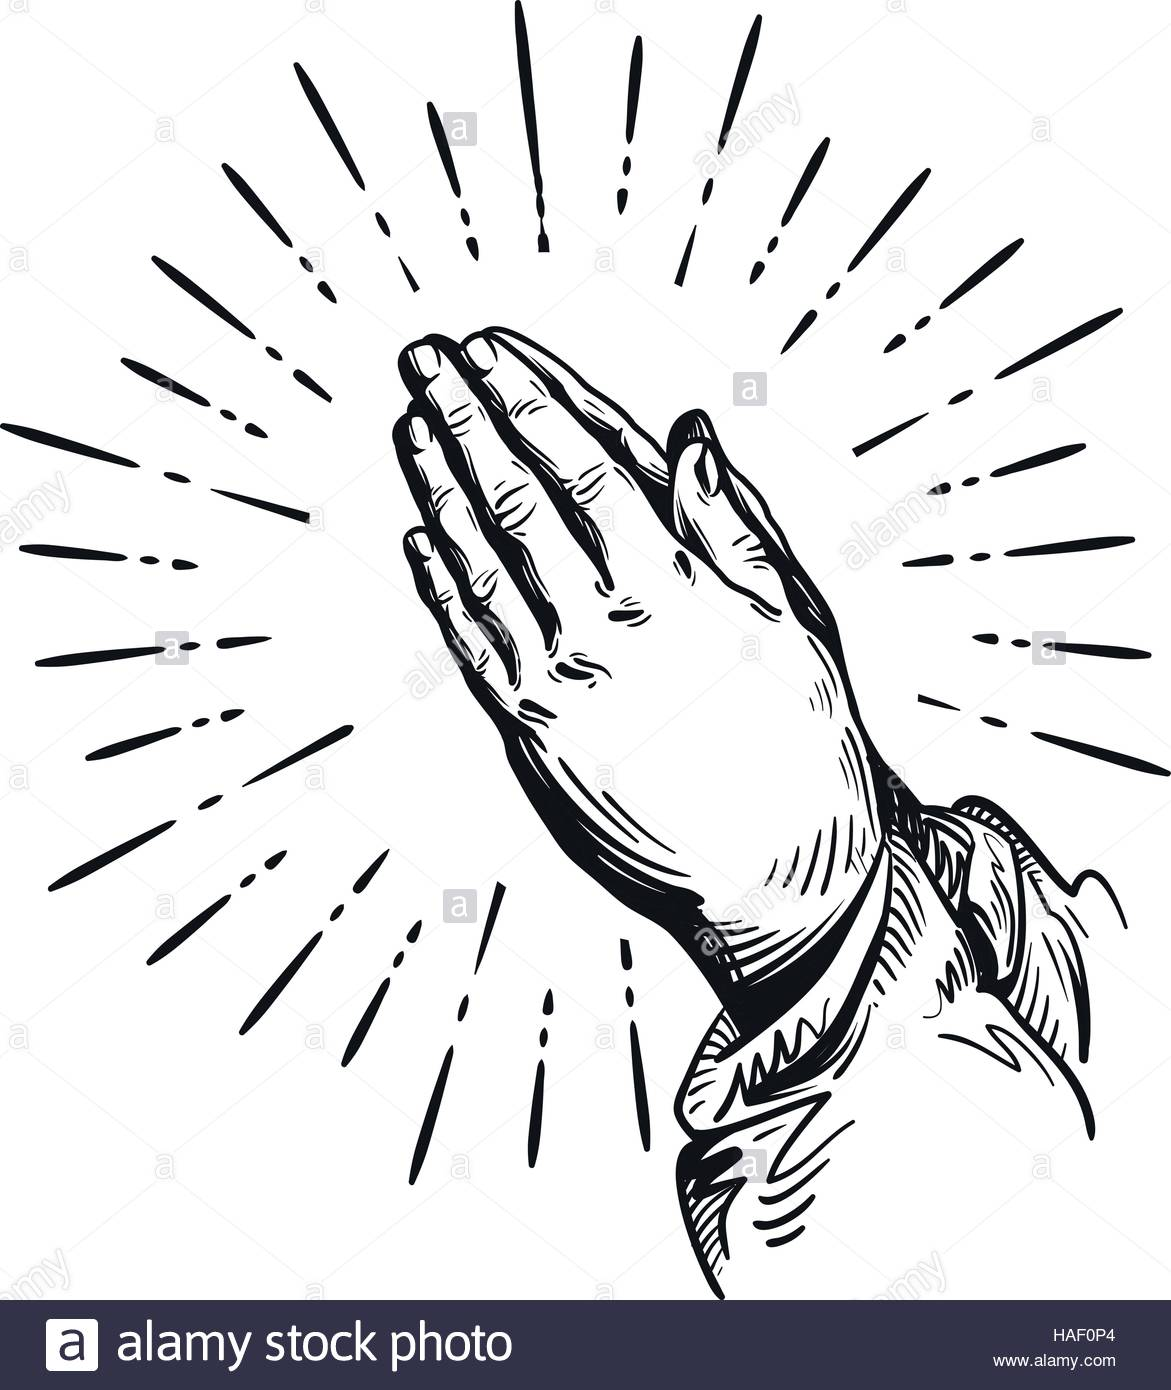 1171x1390 Prayer. Sketch Praying Hands. Vector Illustration Isolated